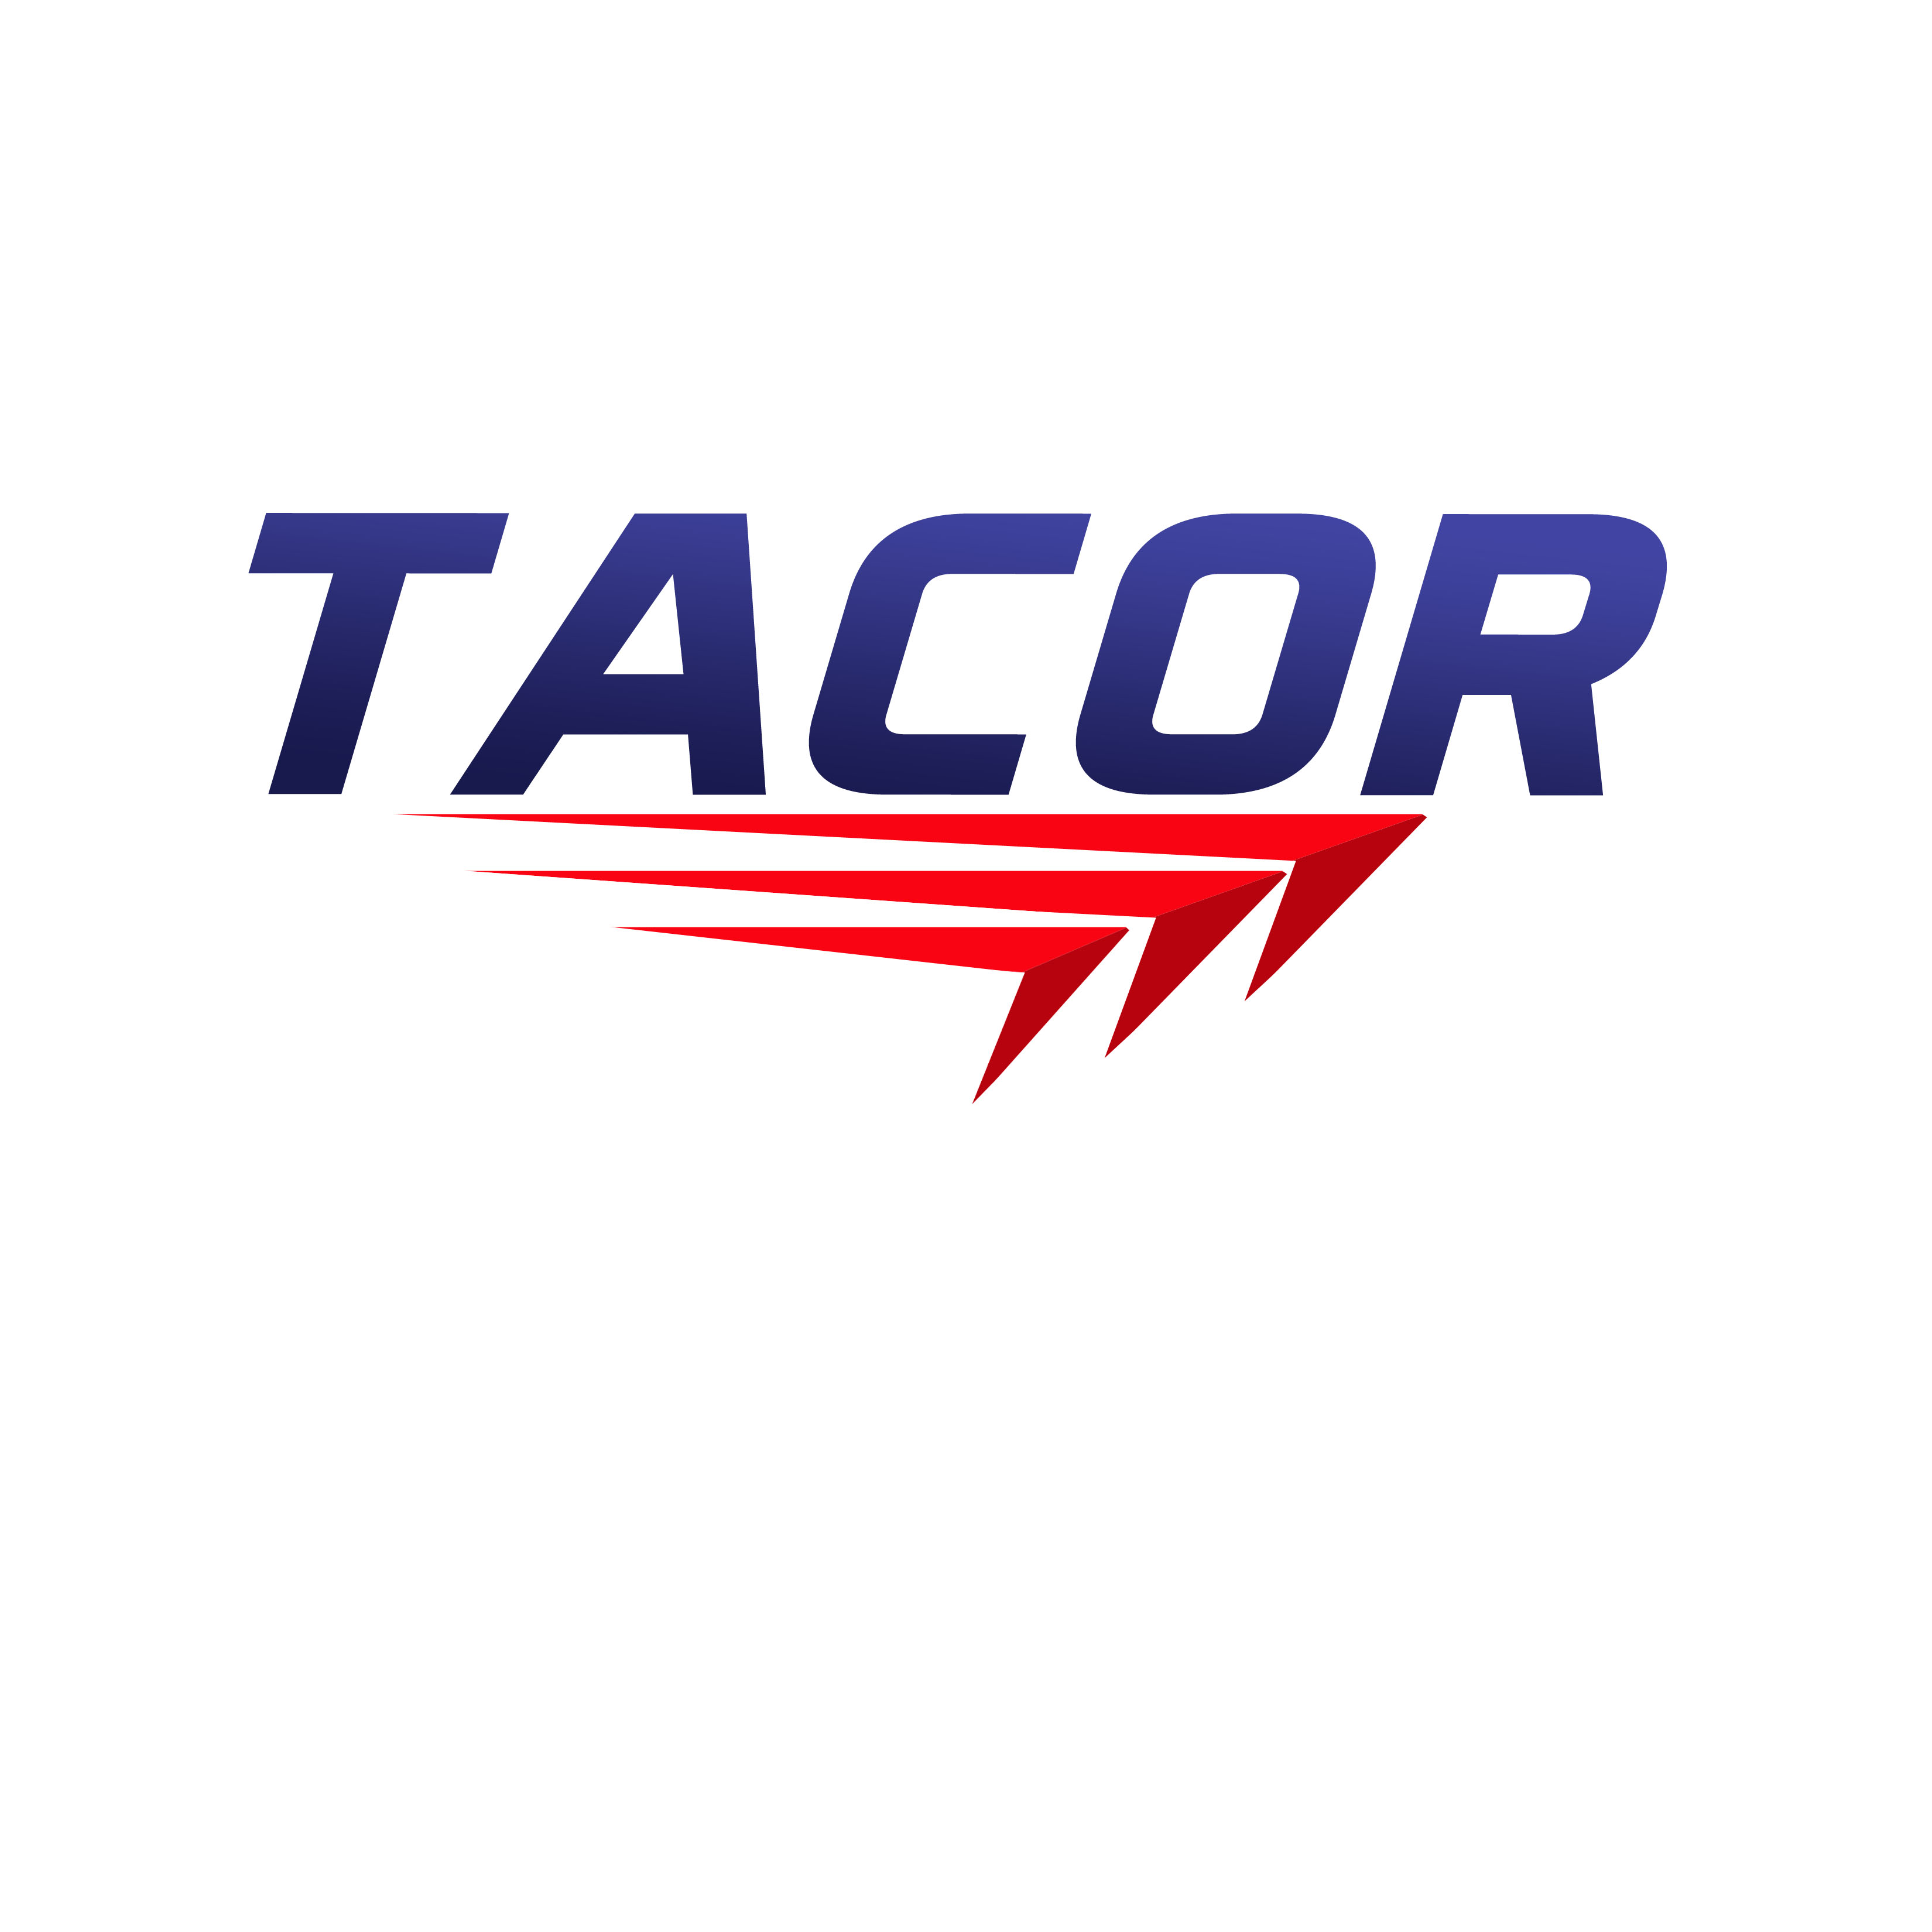 Logo Design by Allan Esclamado - Entry No. 41 in the Logo Design Contest Artistic Logo Design for TACOR.